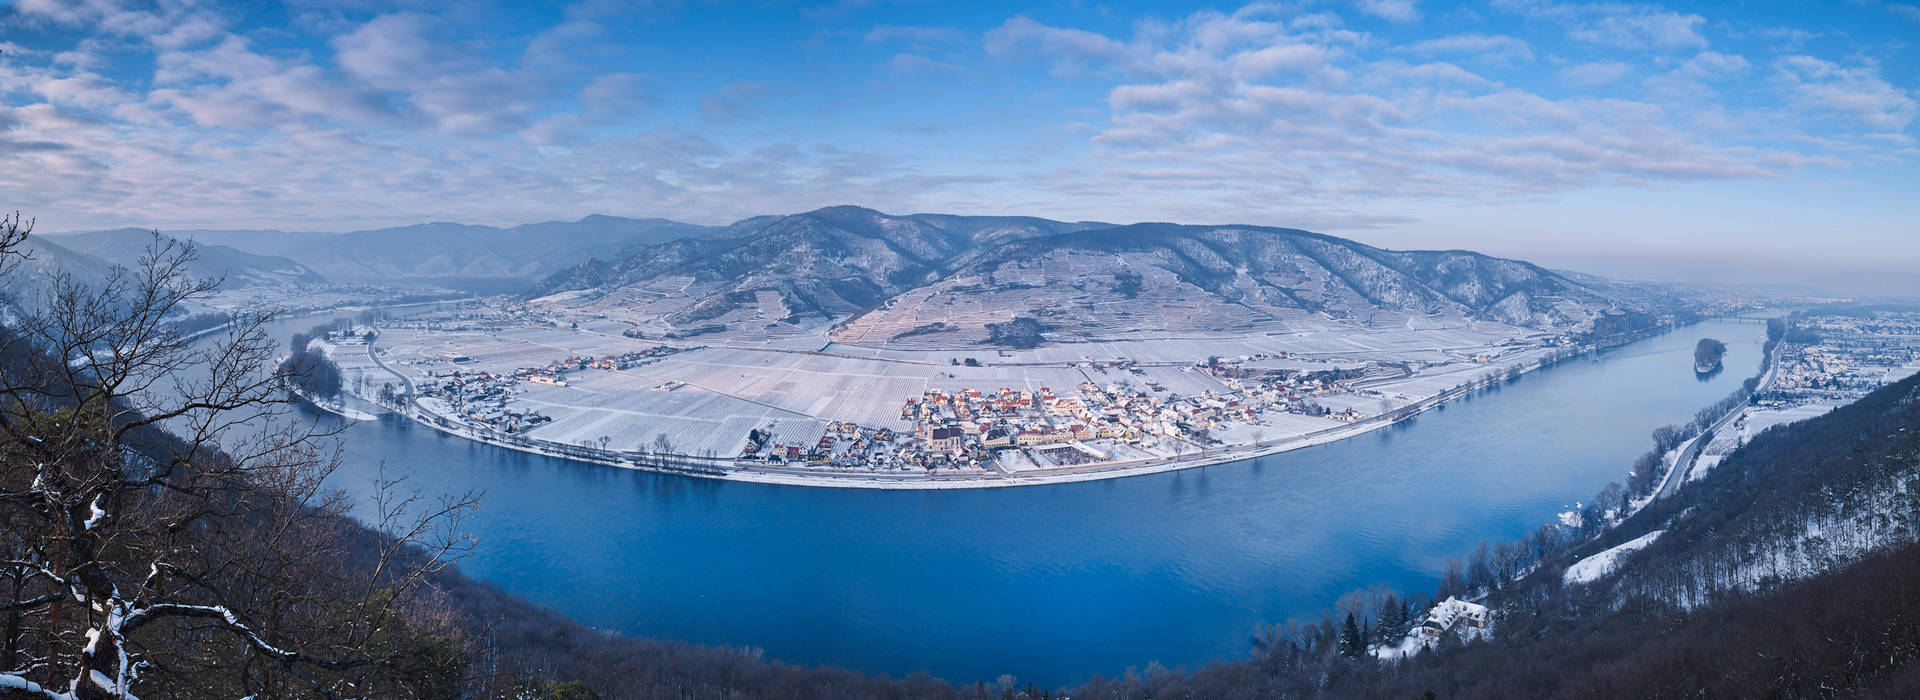 Wachau im Winter © Donau NÖ, Andreas Hofer